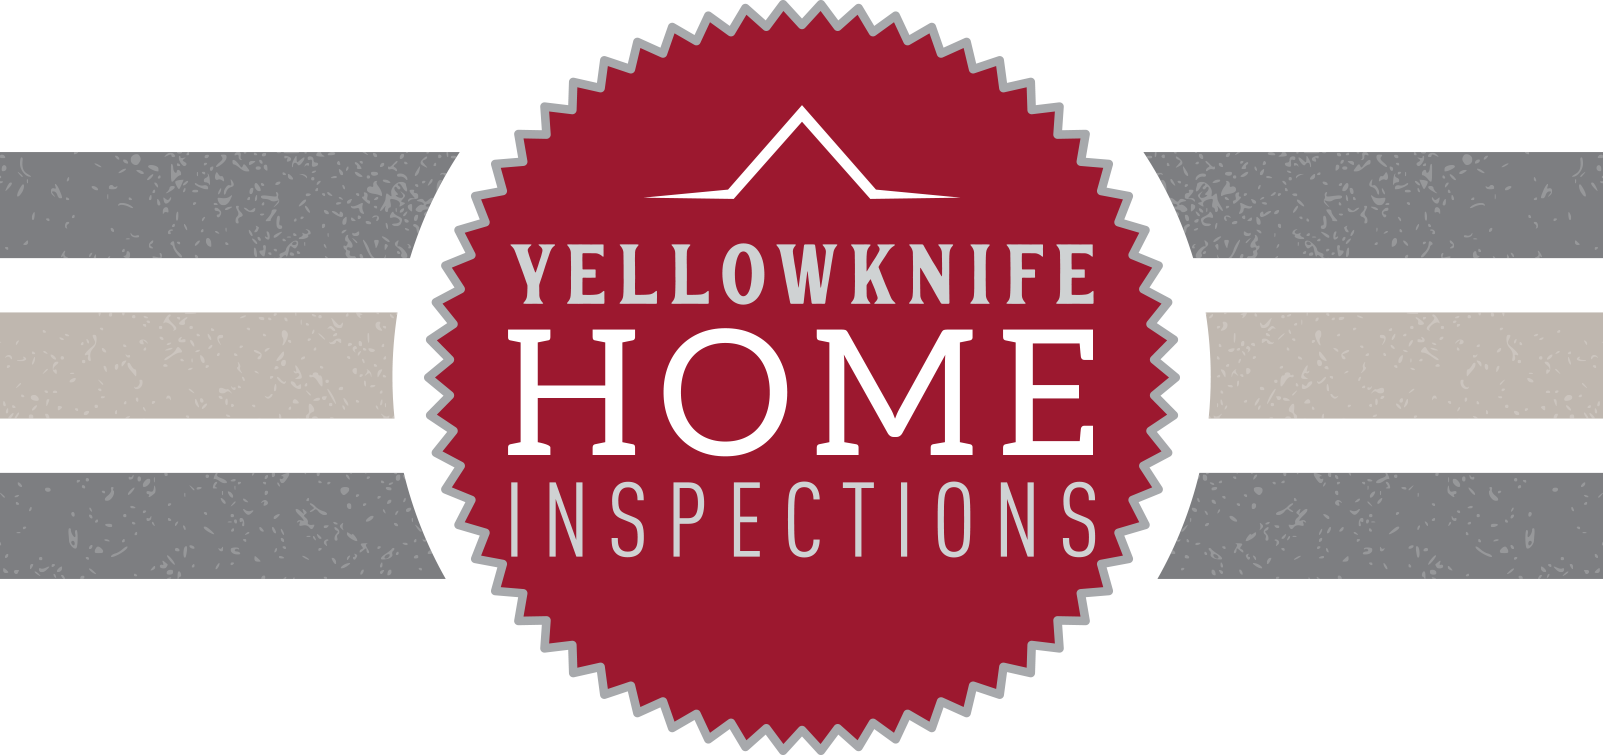 Yellowknife Home Inspections